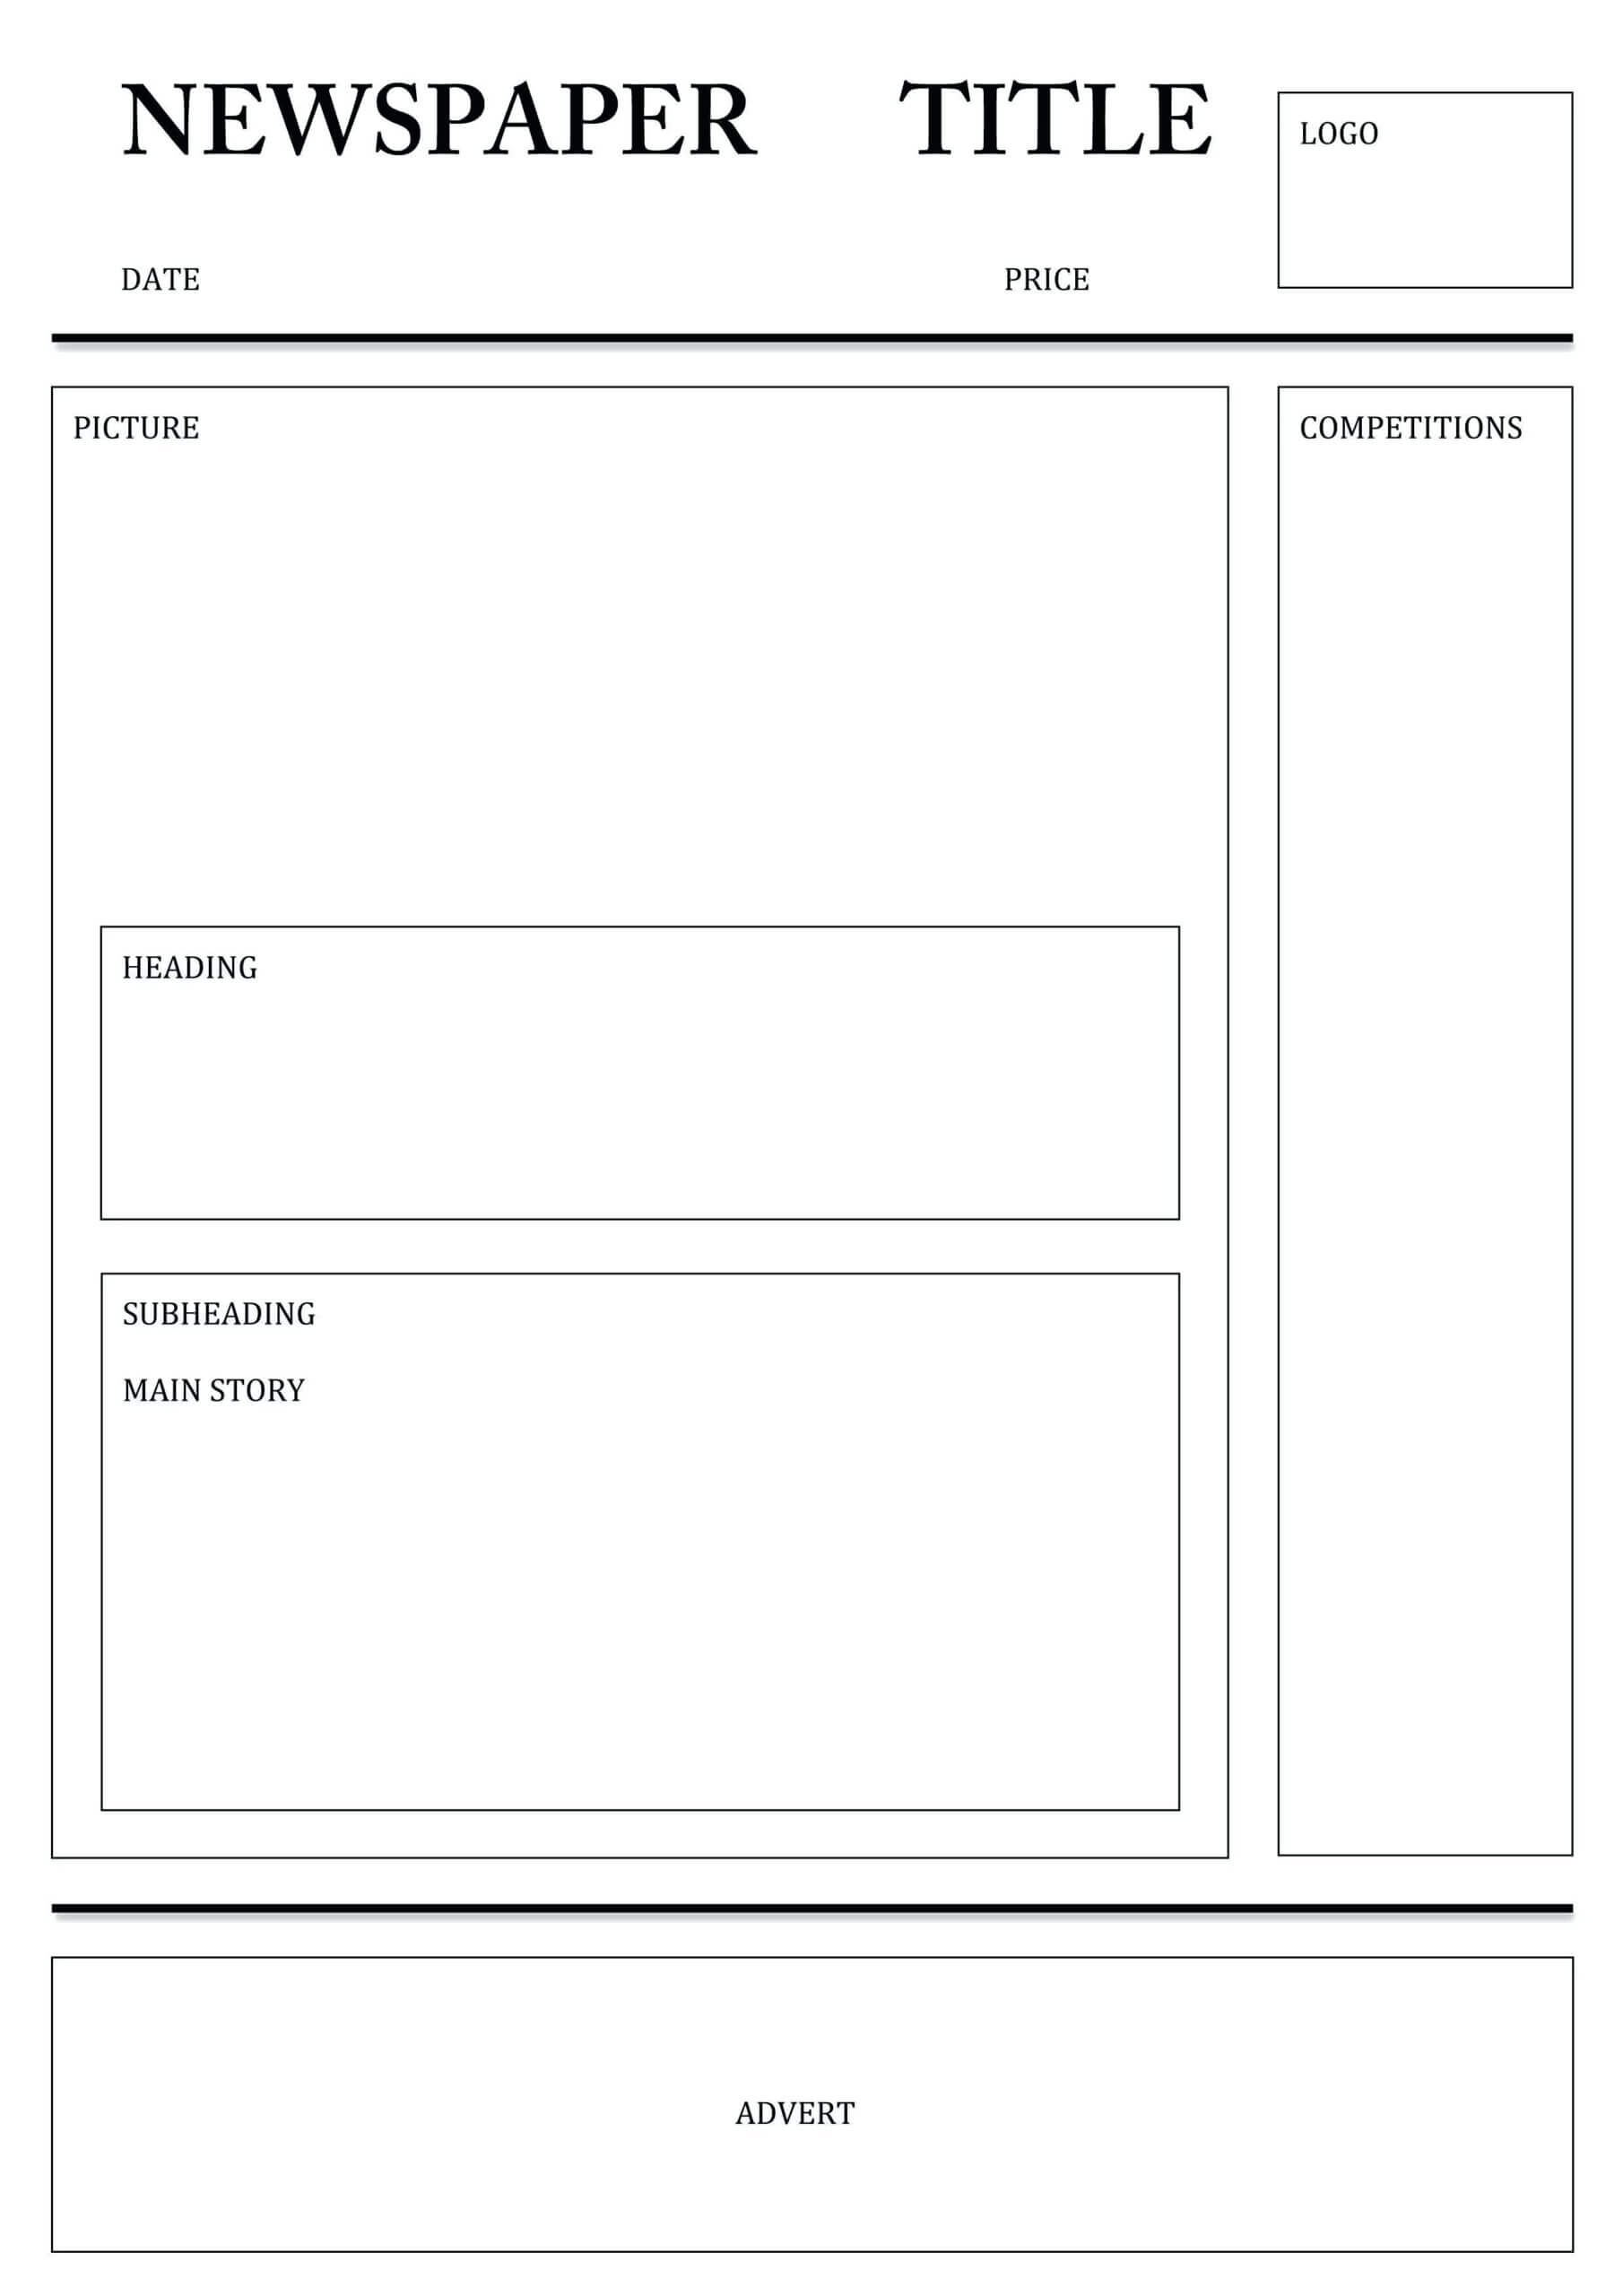 Newspaper Template For Word Pdf Excel | Templates Printable Inside Blank Newspaper Template For Word